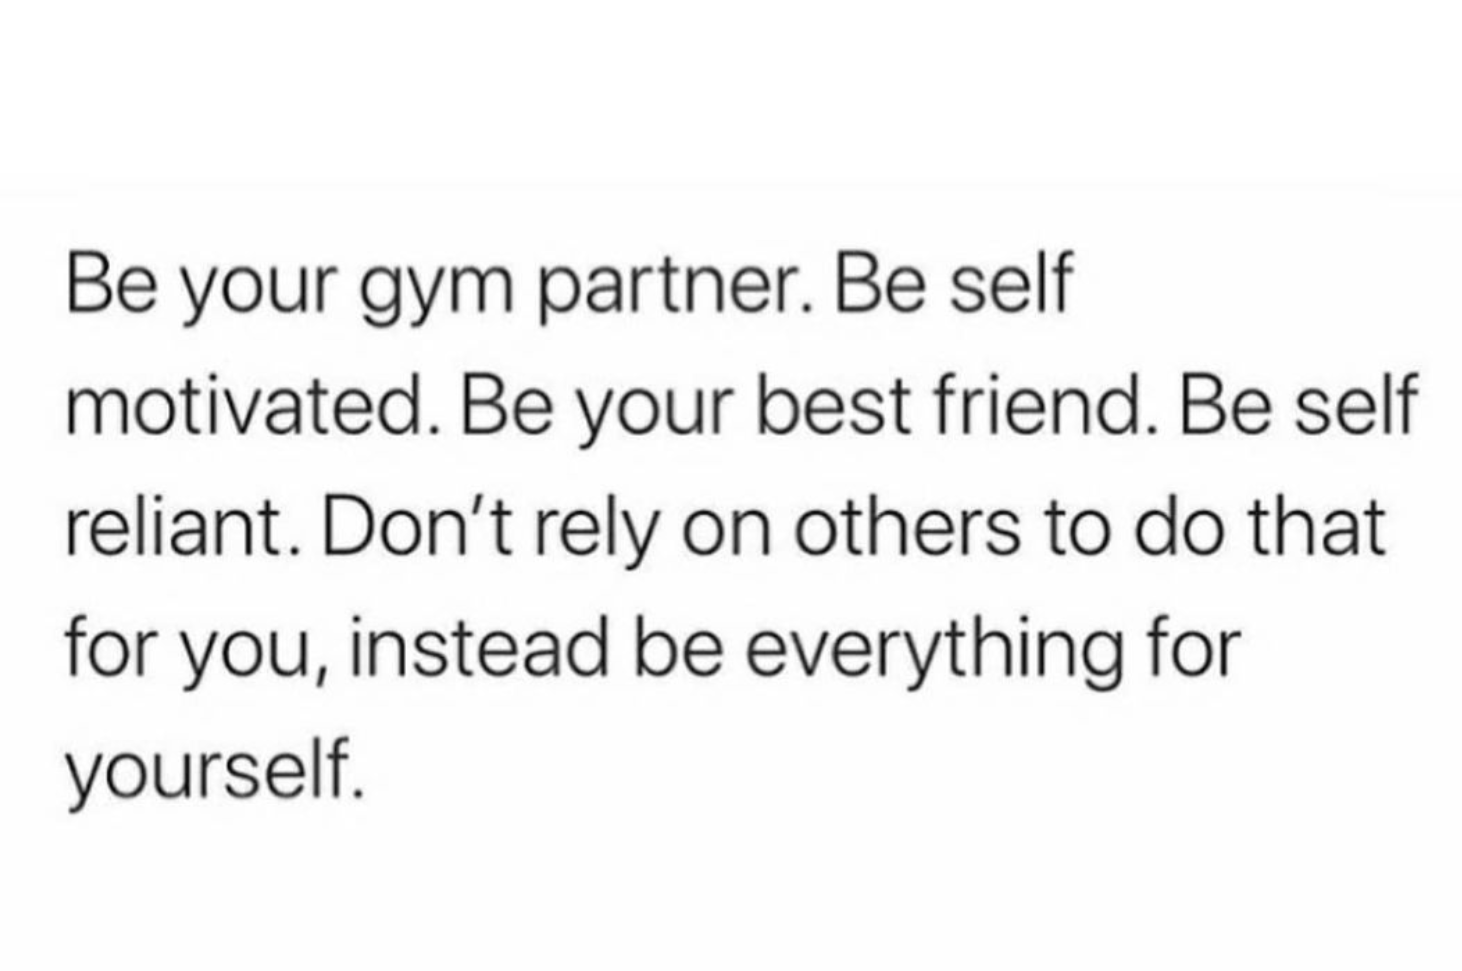 [image] Rely on yourself!